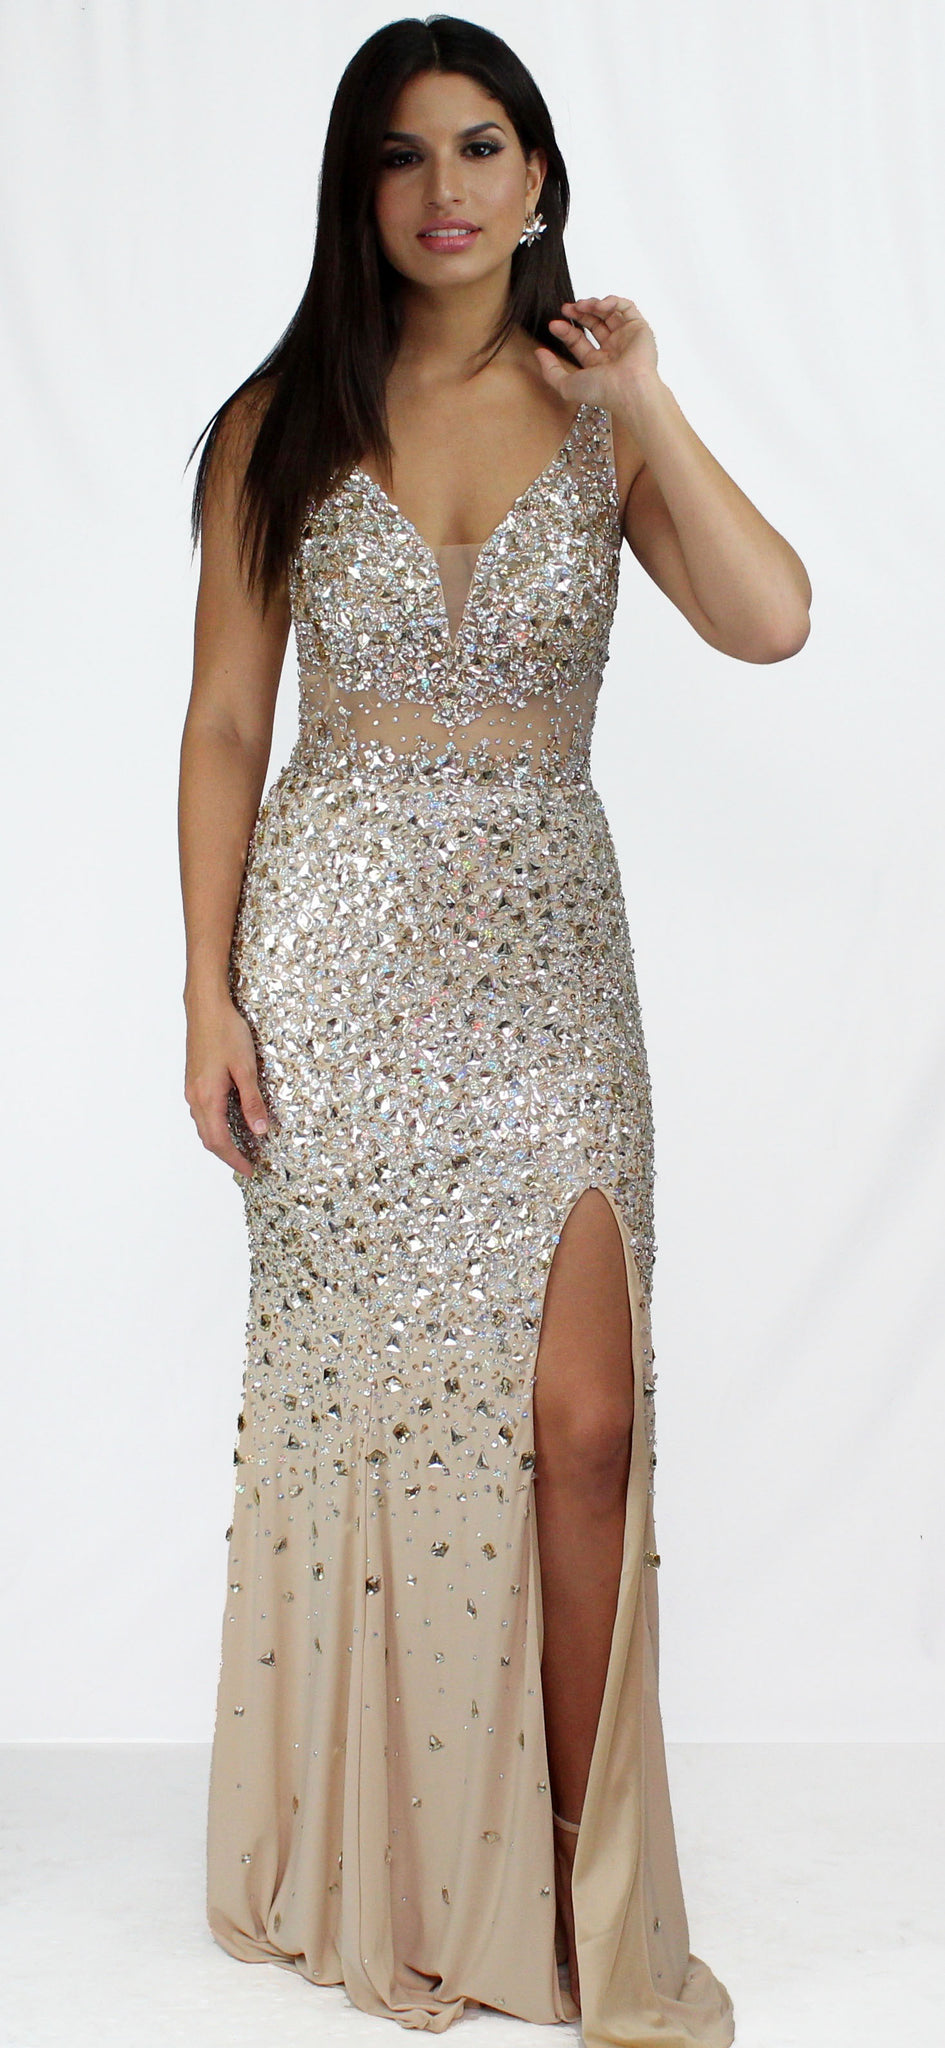 Own the Night Nude & Stones Formal Gown